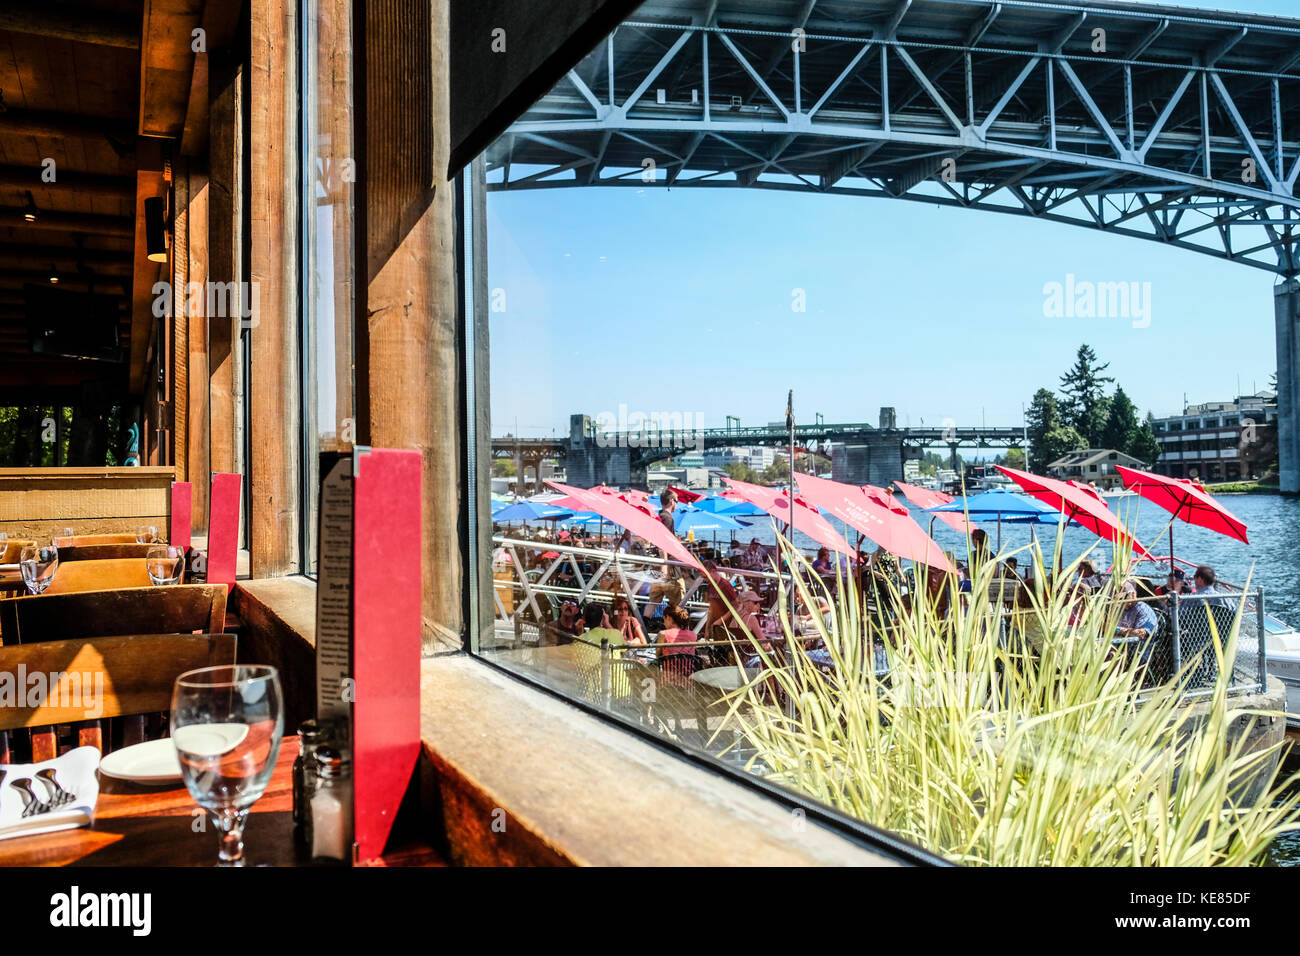 Seattle Lake Union and ship canal bridge seen through Ivar's Seafood Restaurant - Stock Image